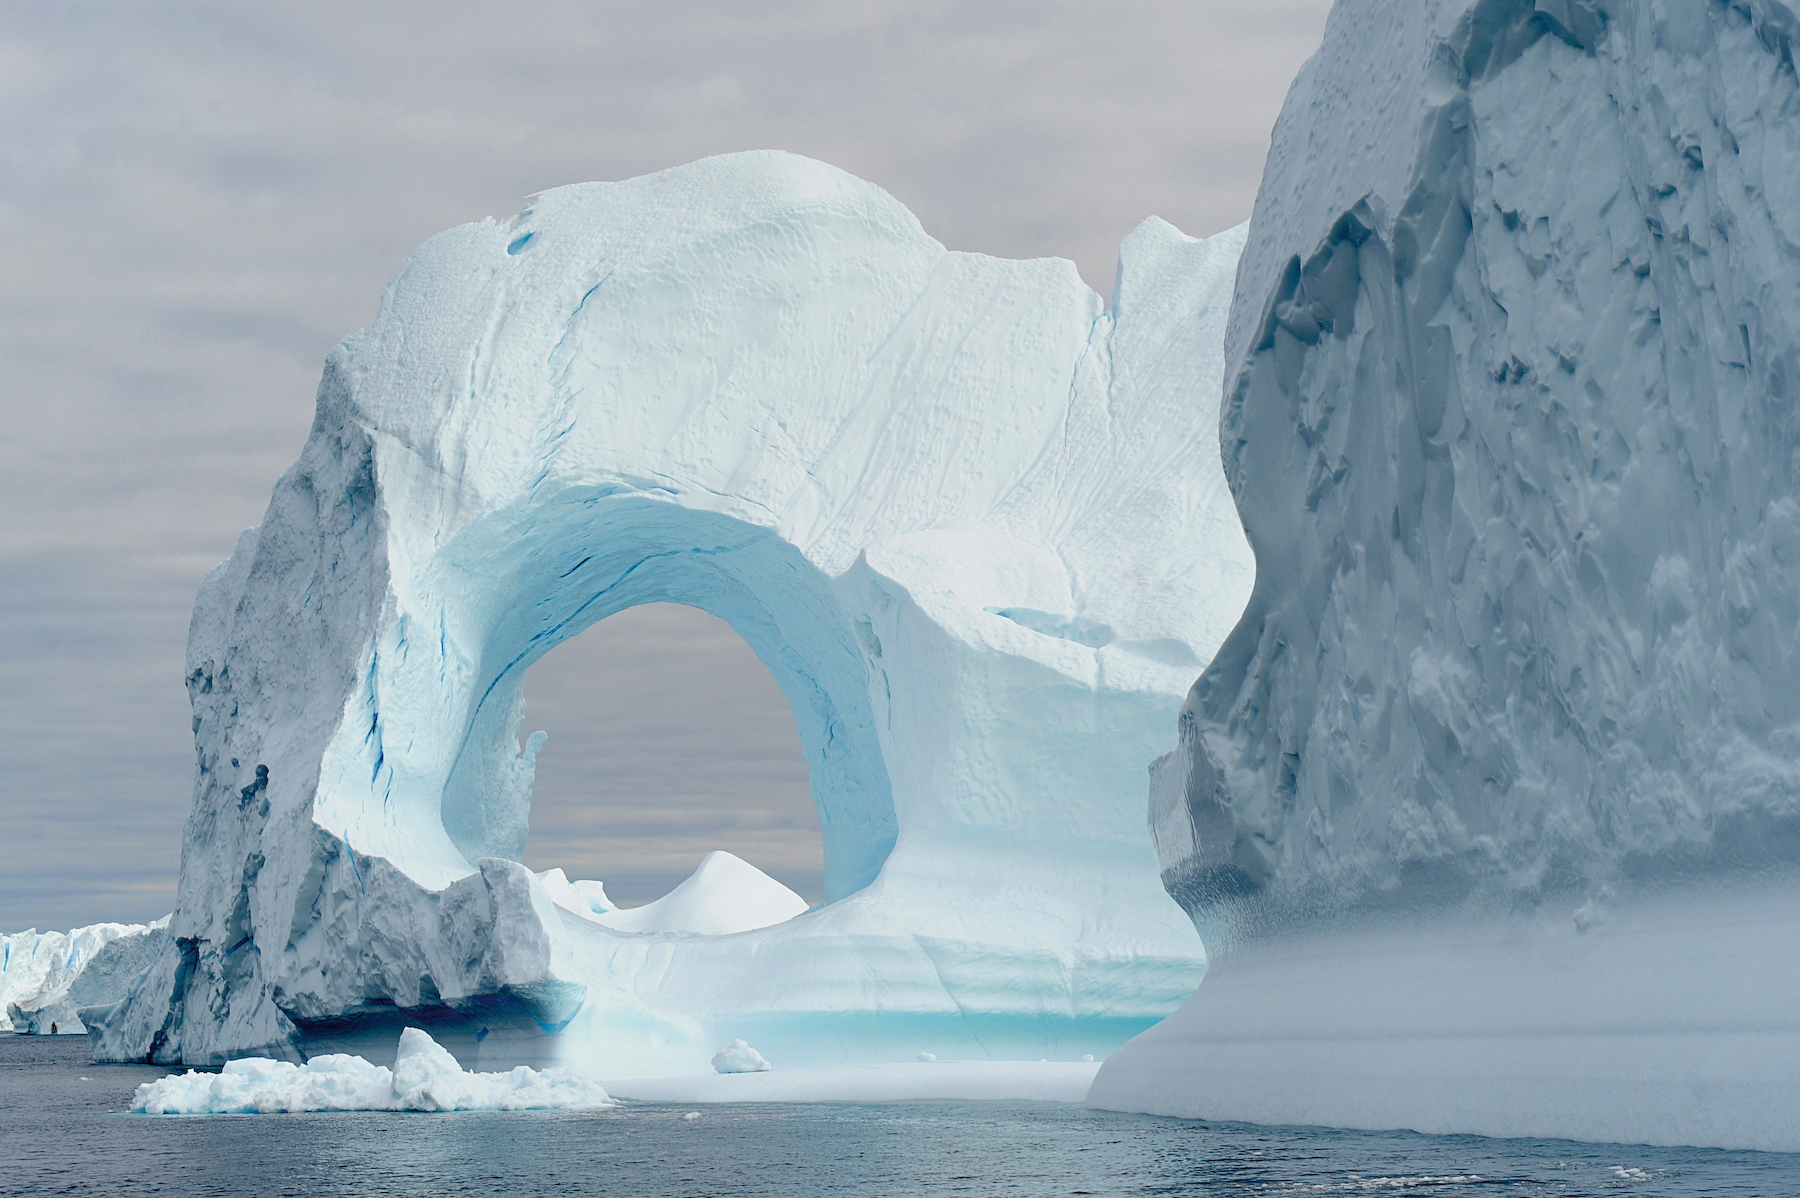 The Icebergs in Greenland's Disko Bay